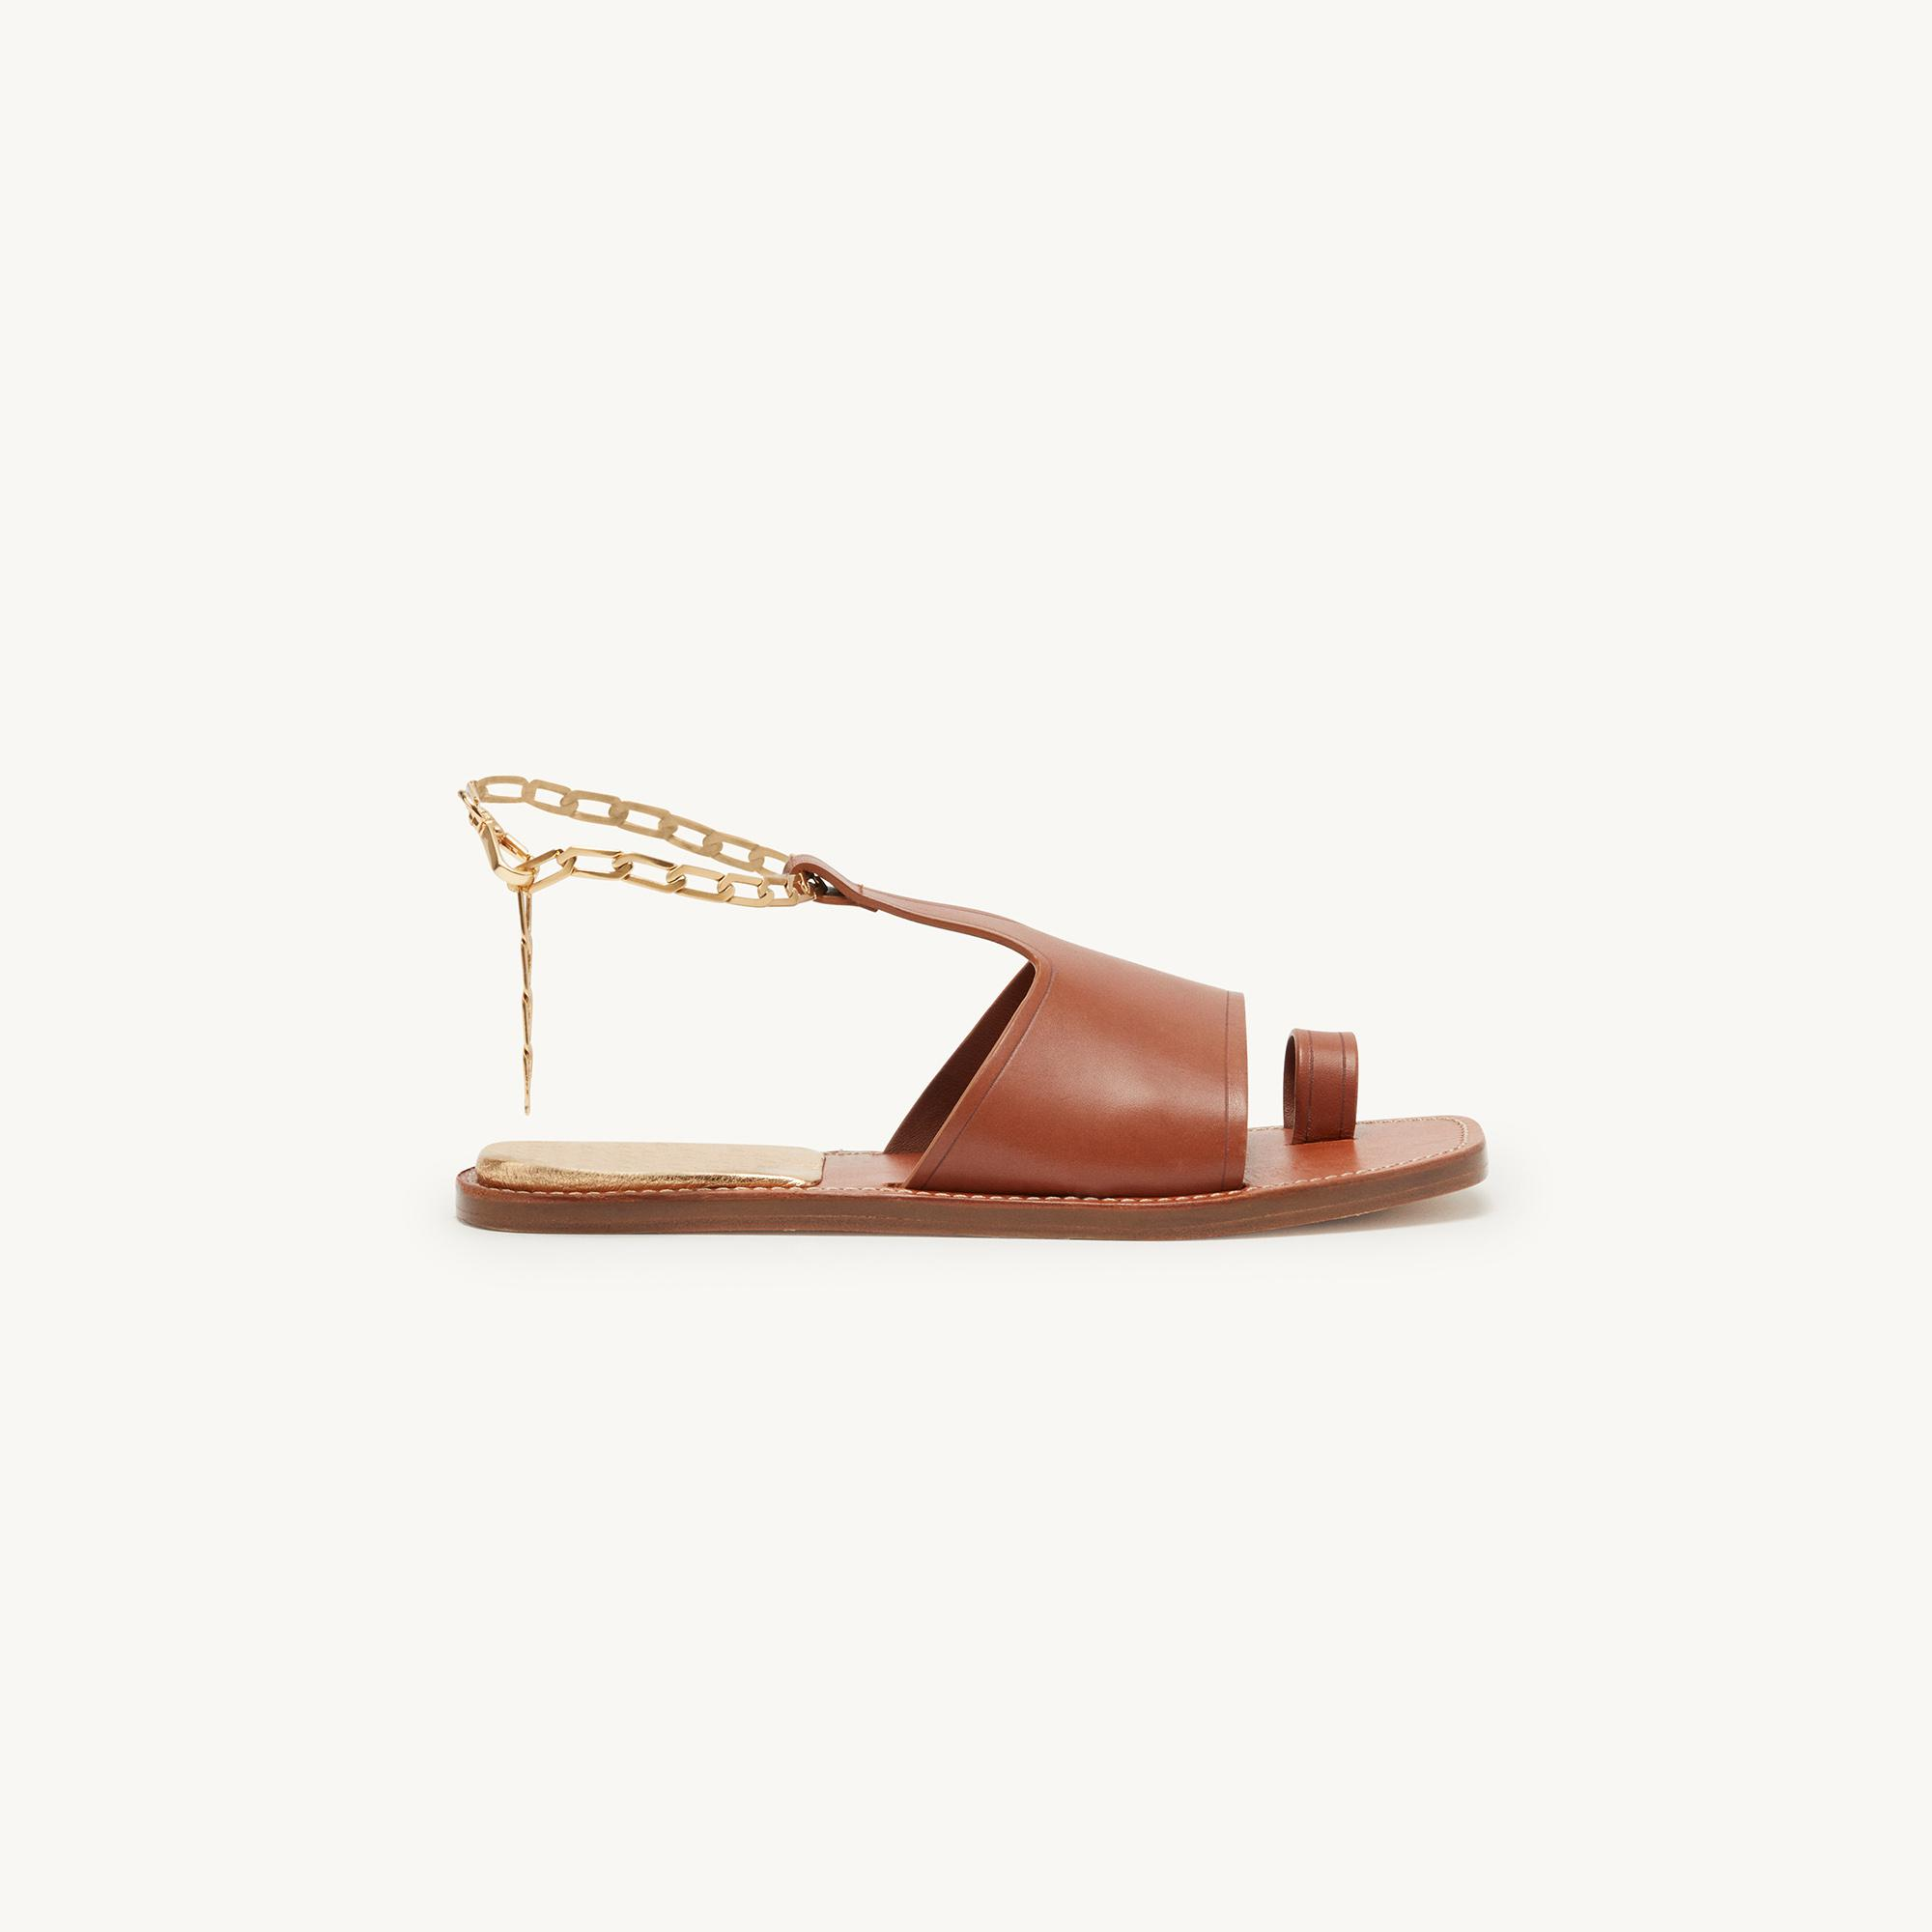 Leather sandals with chain detail 1